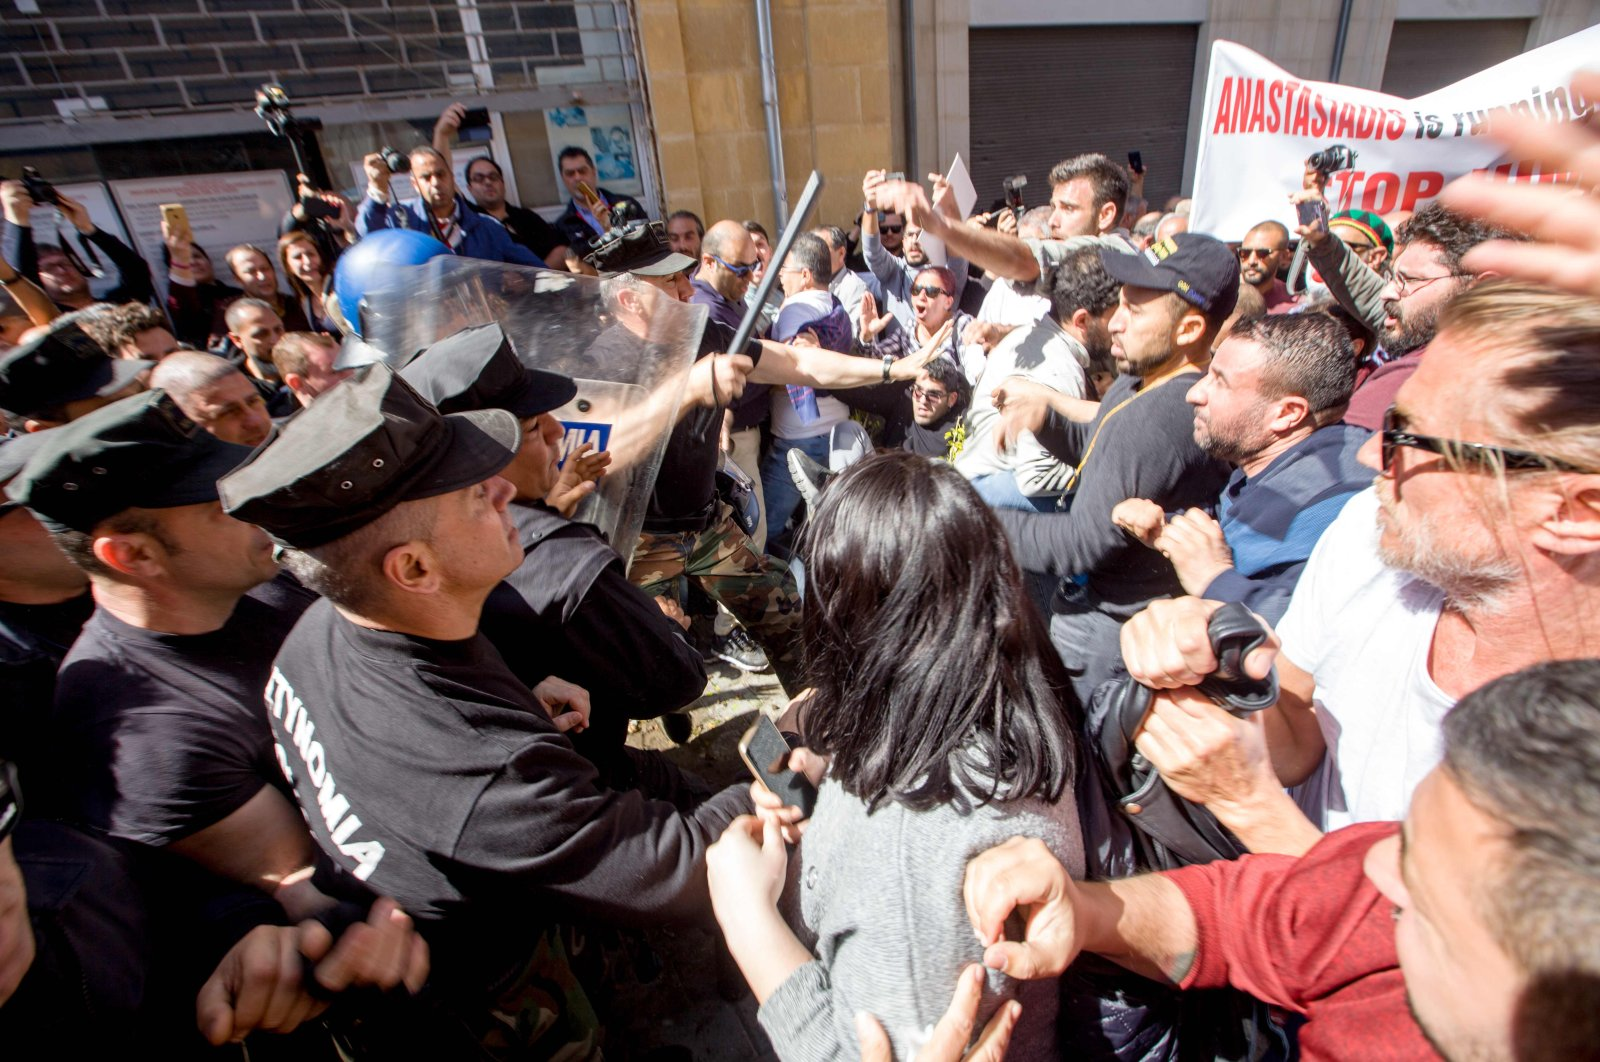 Protesters clash with Greek Cypriot police during a demonstration on March 7, in the U.N. buffer zone separating the island from TRNC and Greek, Cypriots over fears of the spread of COVID-19 coronavirus. (AFP Photo)